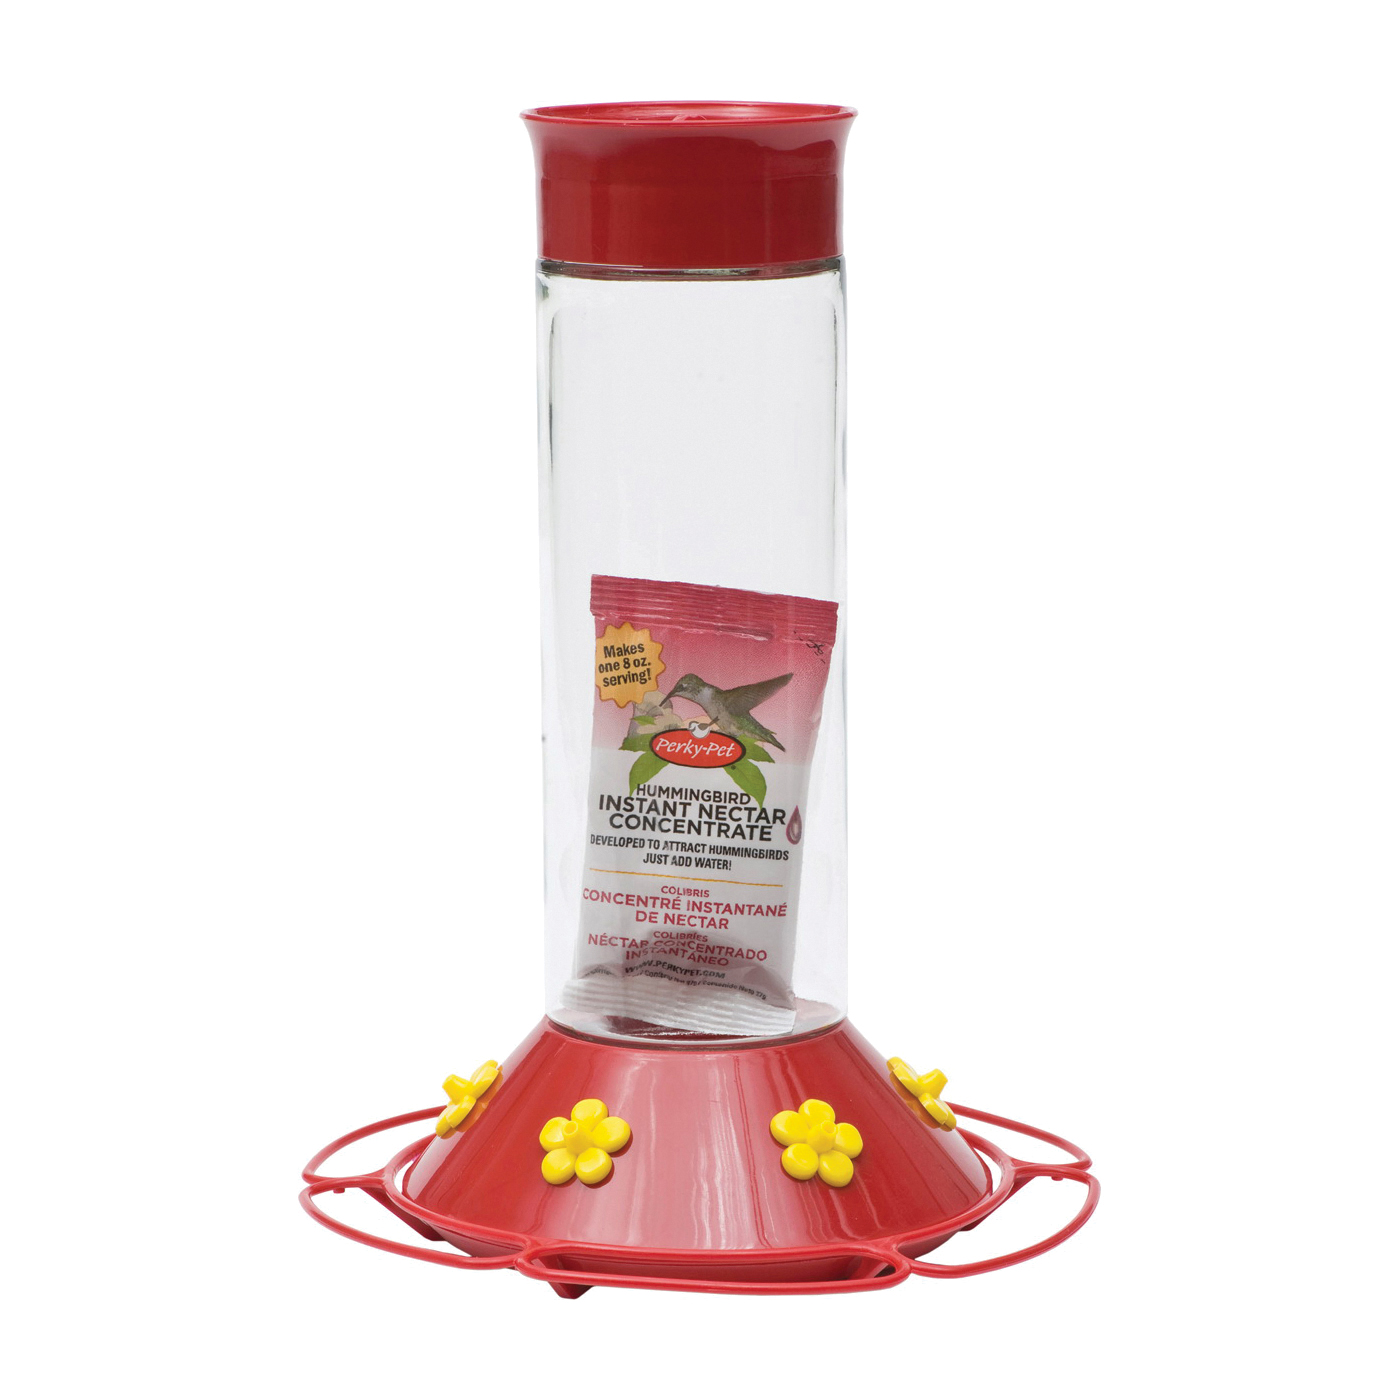 Picture of Perky-Pet 209B Hummingbird Feeder, 30 oz, 6-Port/Perch, Glass/Plastic, Bright Red/Yellow, 8.3 in H